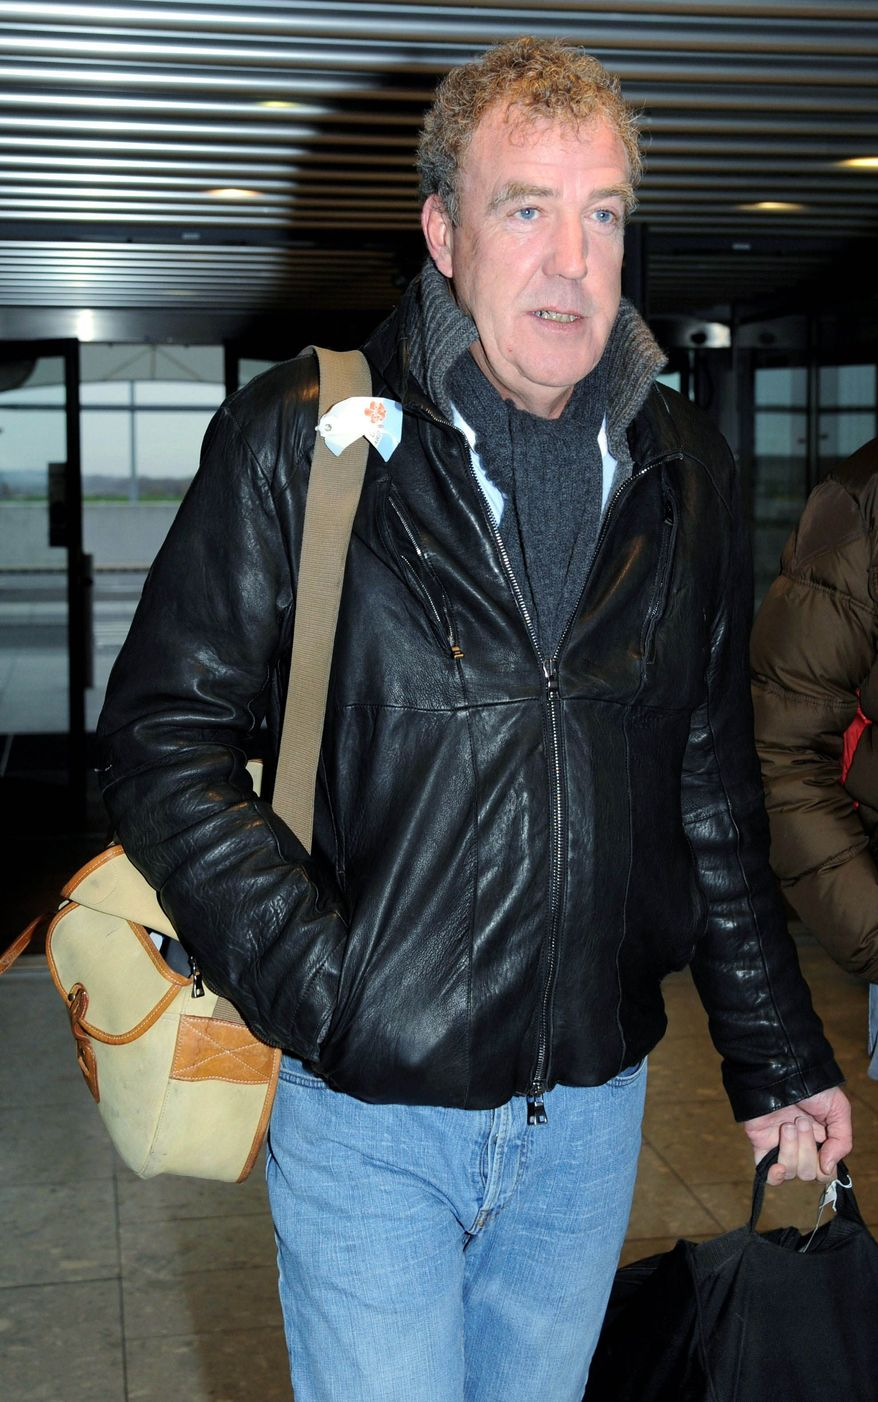 """Top Gear"" host Jeremy Clarkson has one union calling for his job after the BBC personality said Wednesday that striking public-sector workers should be shot. (Associated Press)"